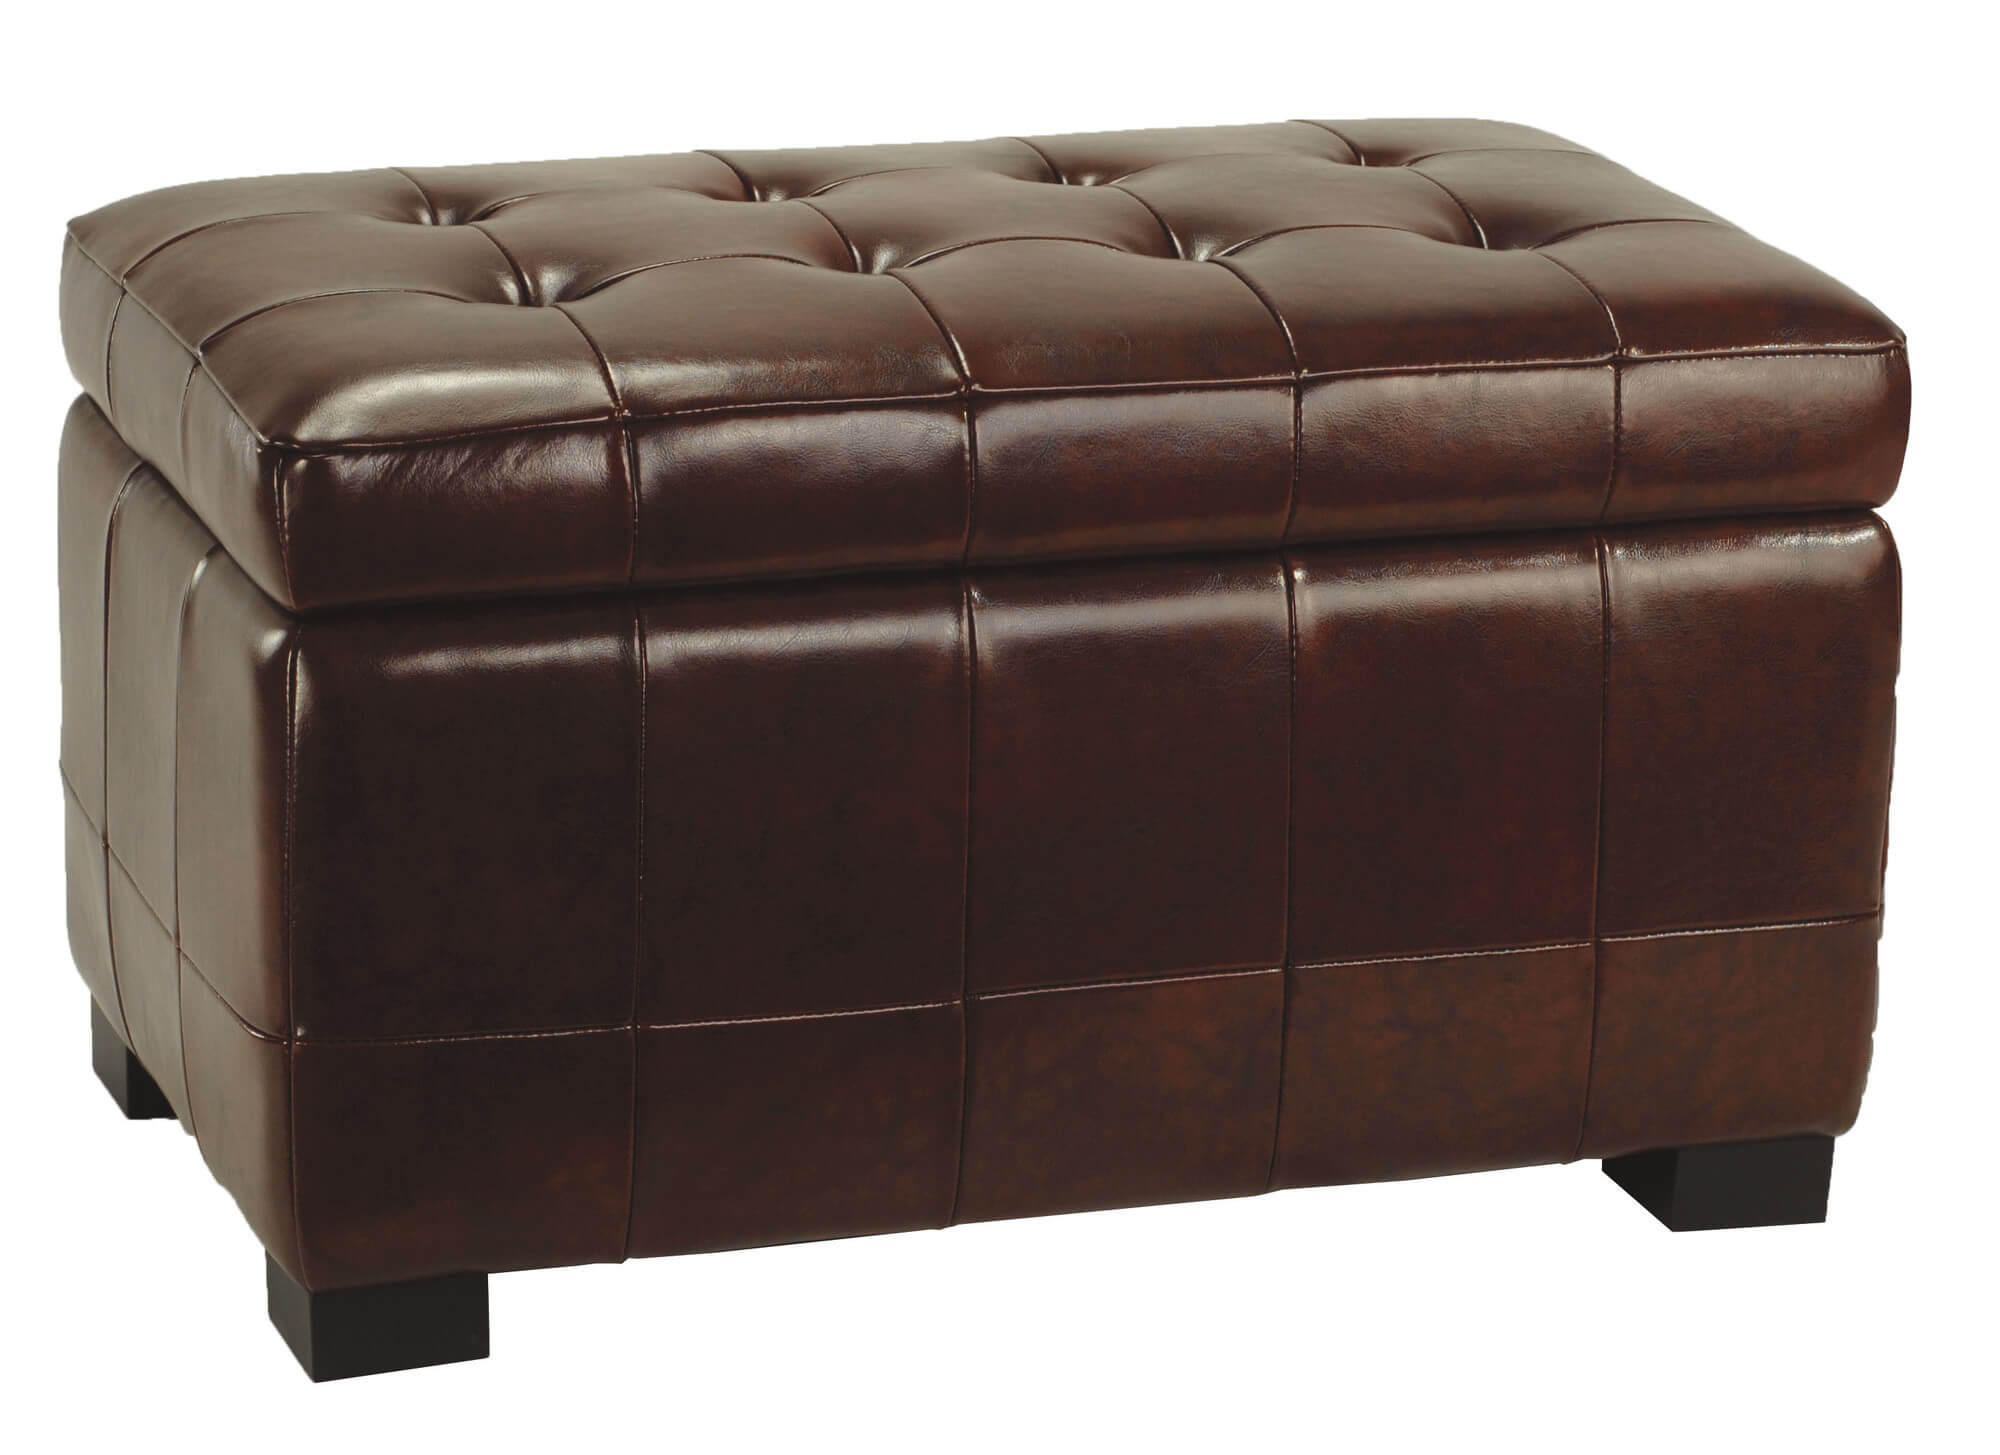 Brown Leather Coffee Table Ottoman 36 Top Brown Leather Ottoman Coffee Tables